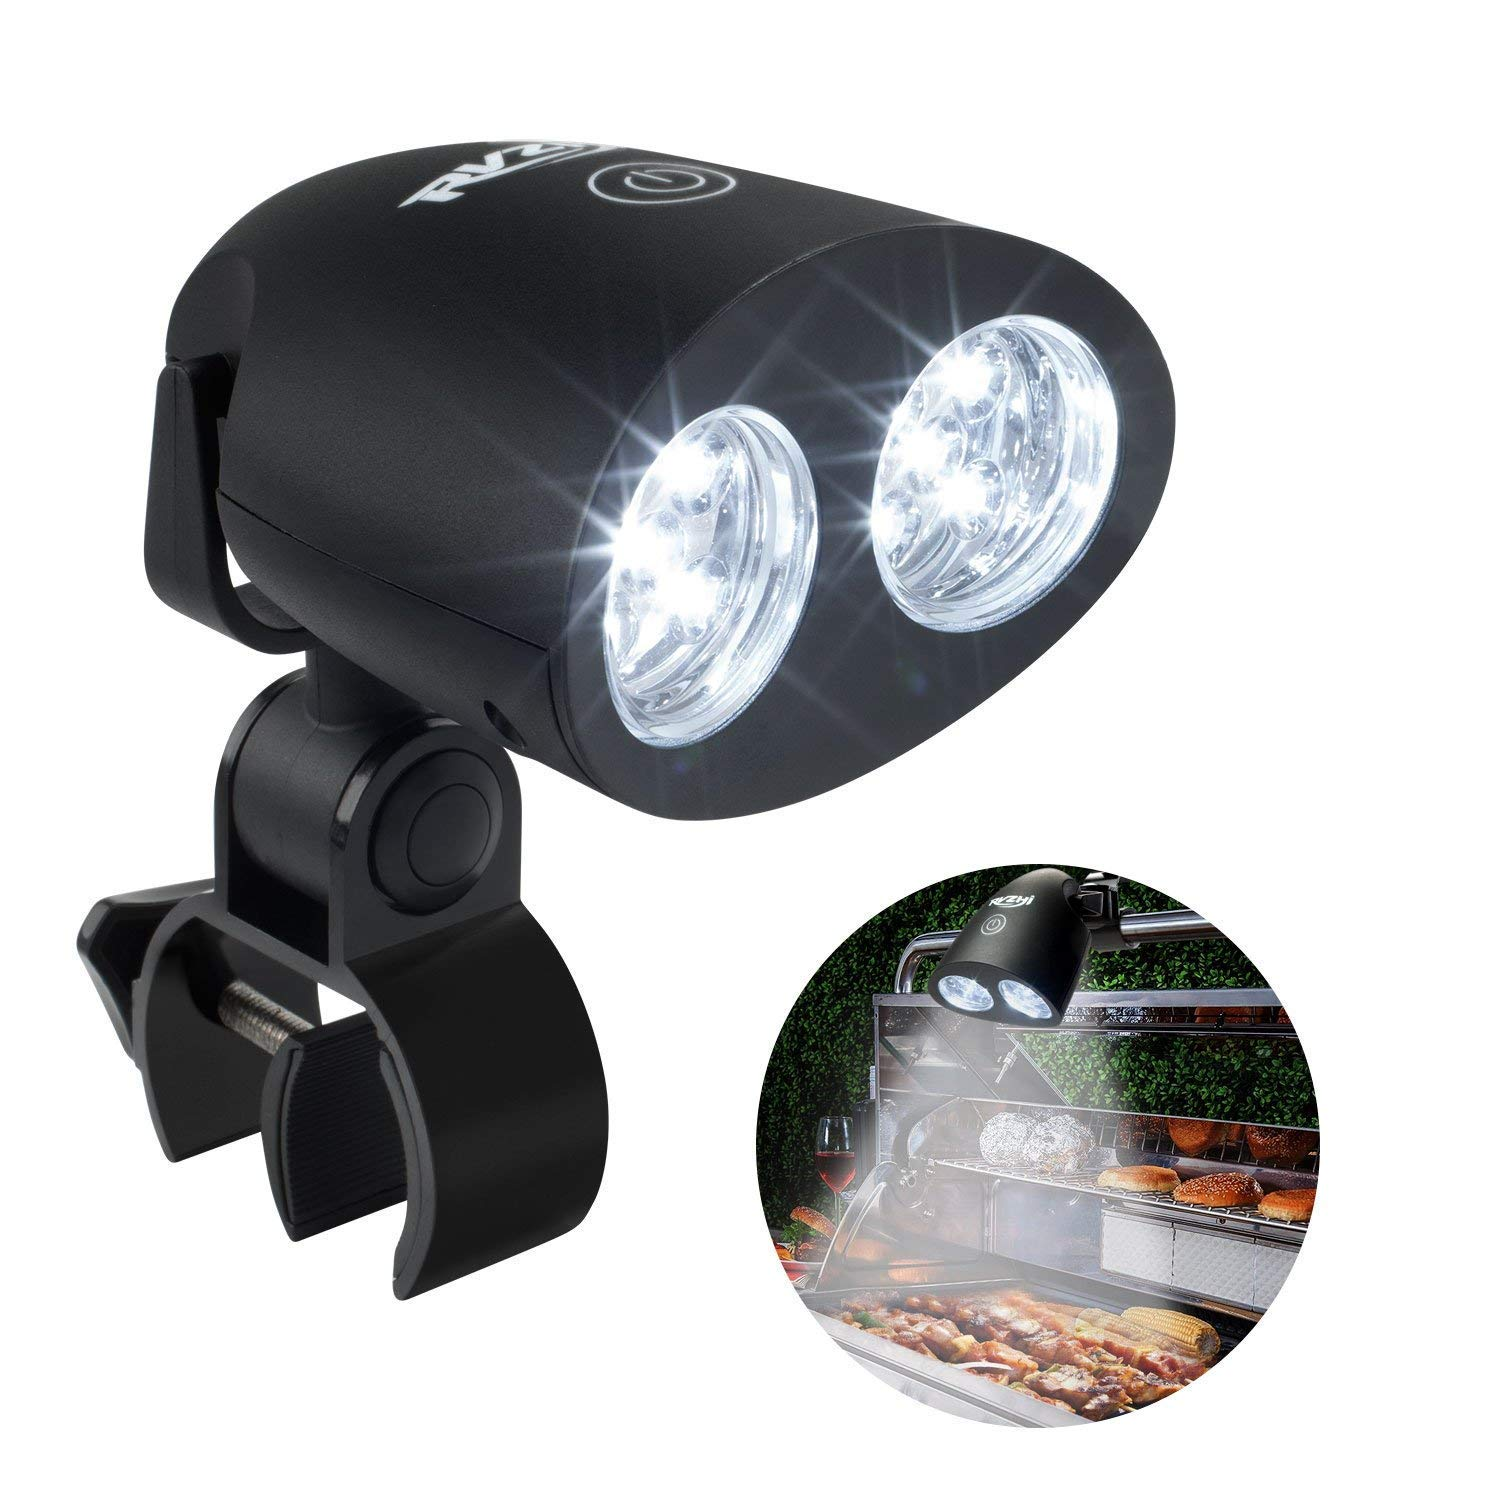 RVZHI Barbecue Grill Light, 360°Rotation for BBQ with 10 Super Bright LED Lights- Heat Resistant,Waterproof,100lm LED BBQ Light for Gas/Charcoal/Electric Grill-Battery Not Include (Black)